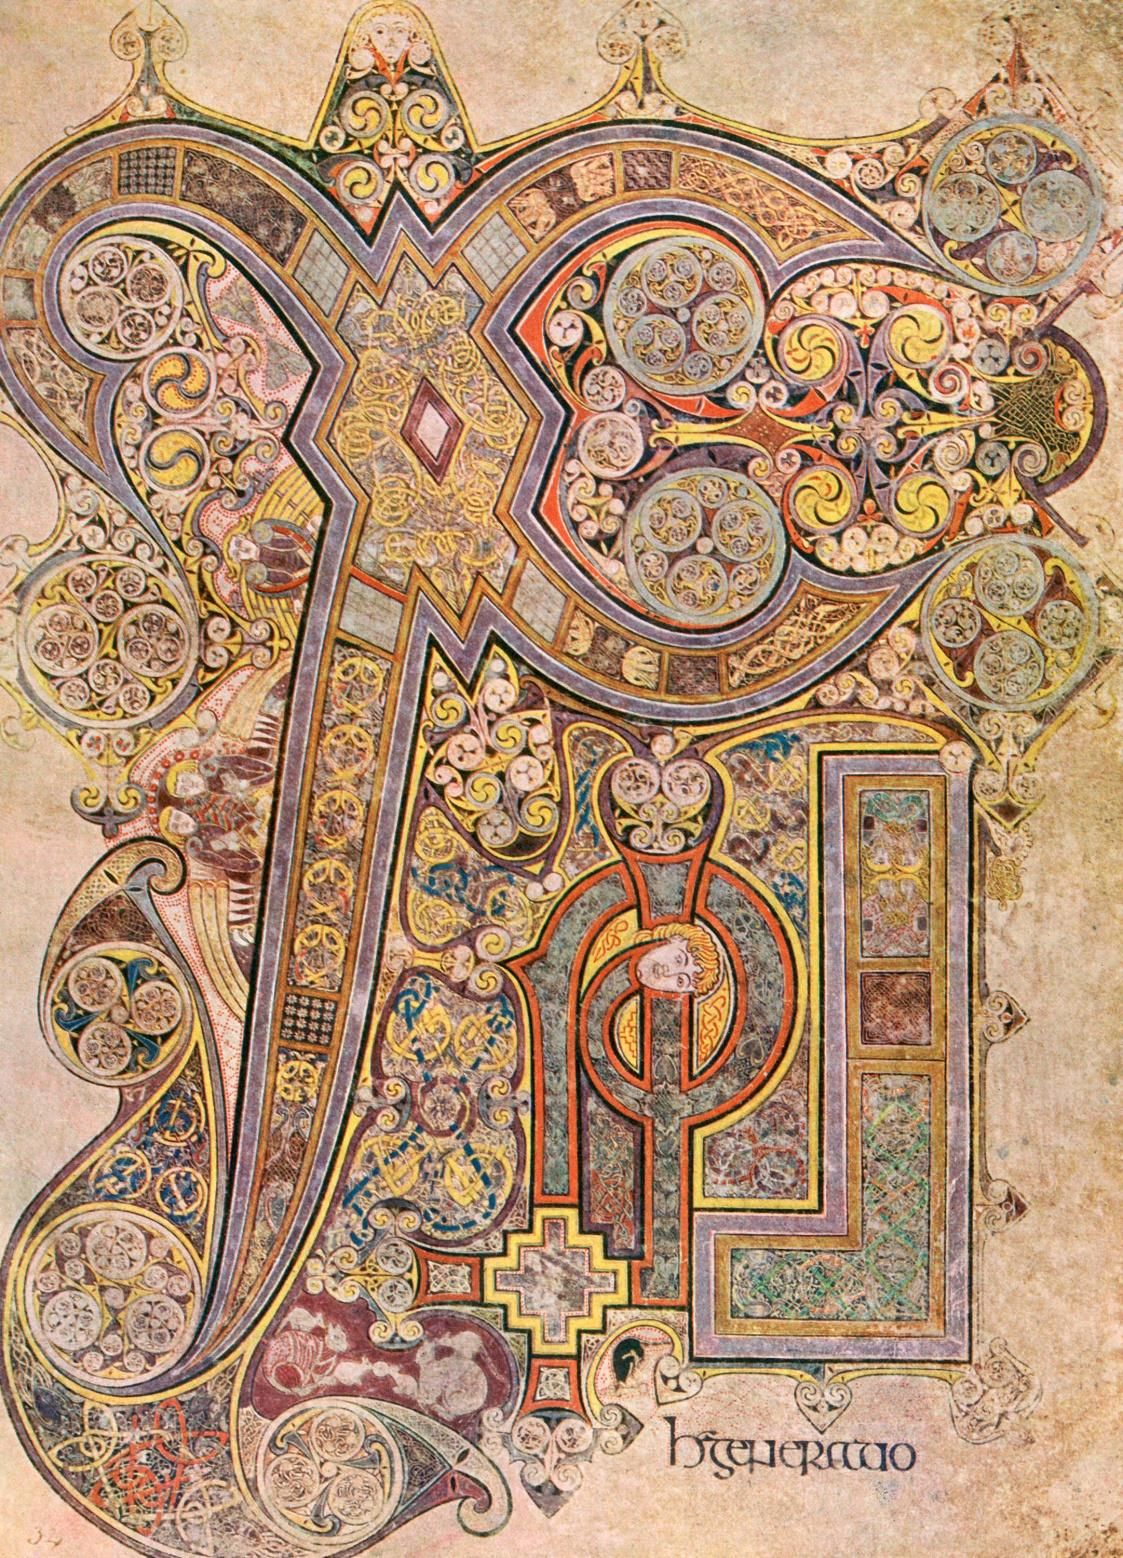 E Book Of Kells Folio 34r of the Book of Kells